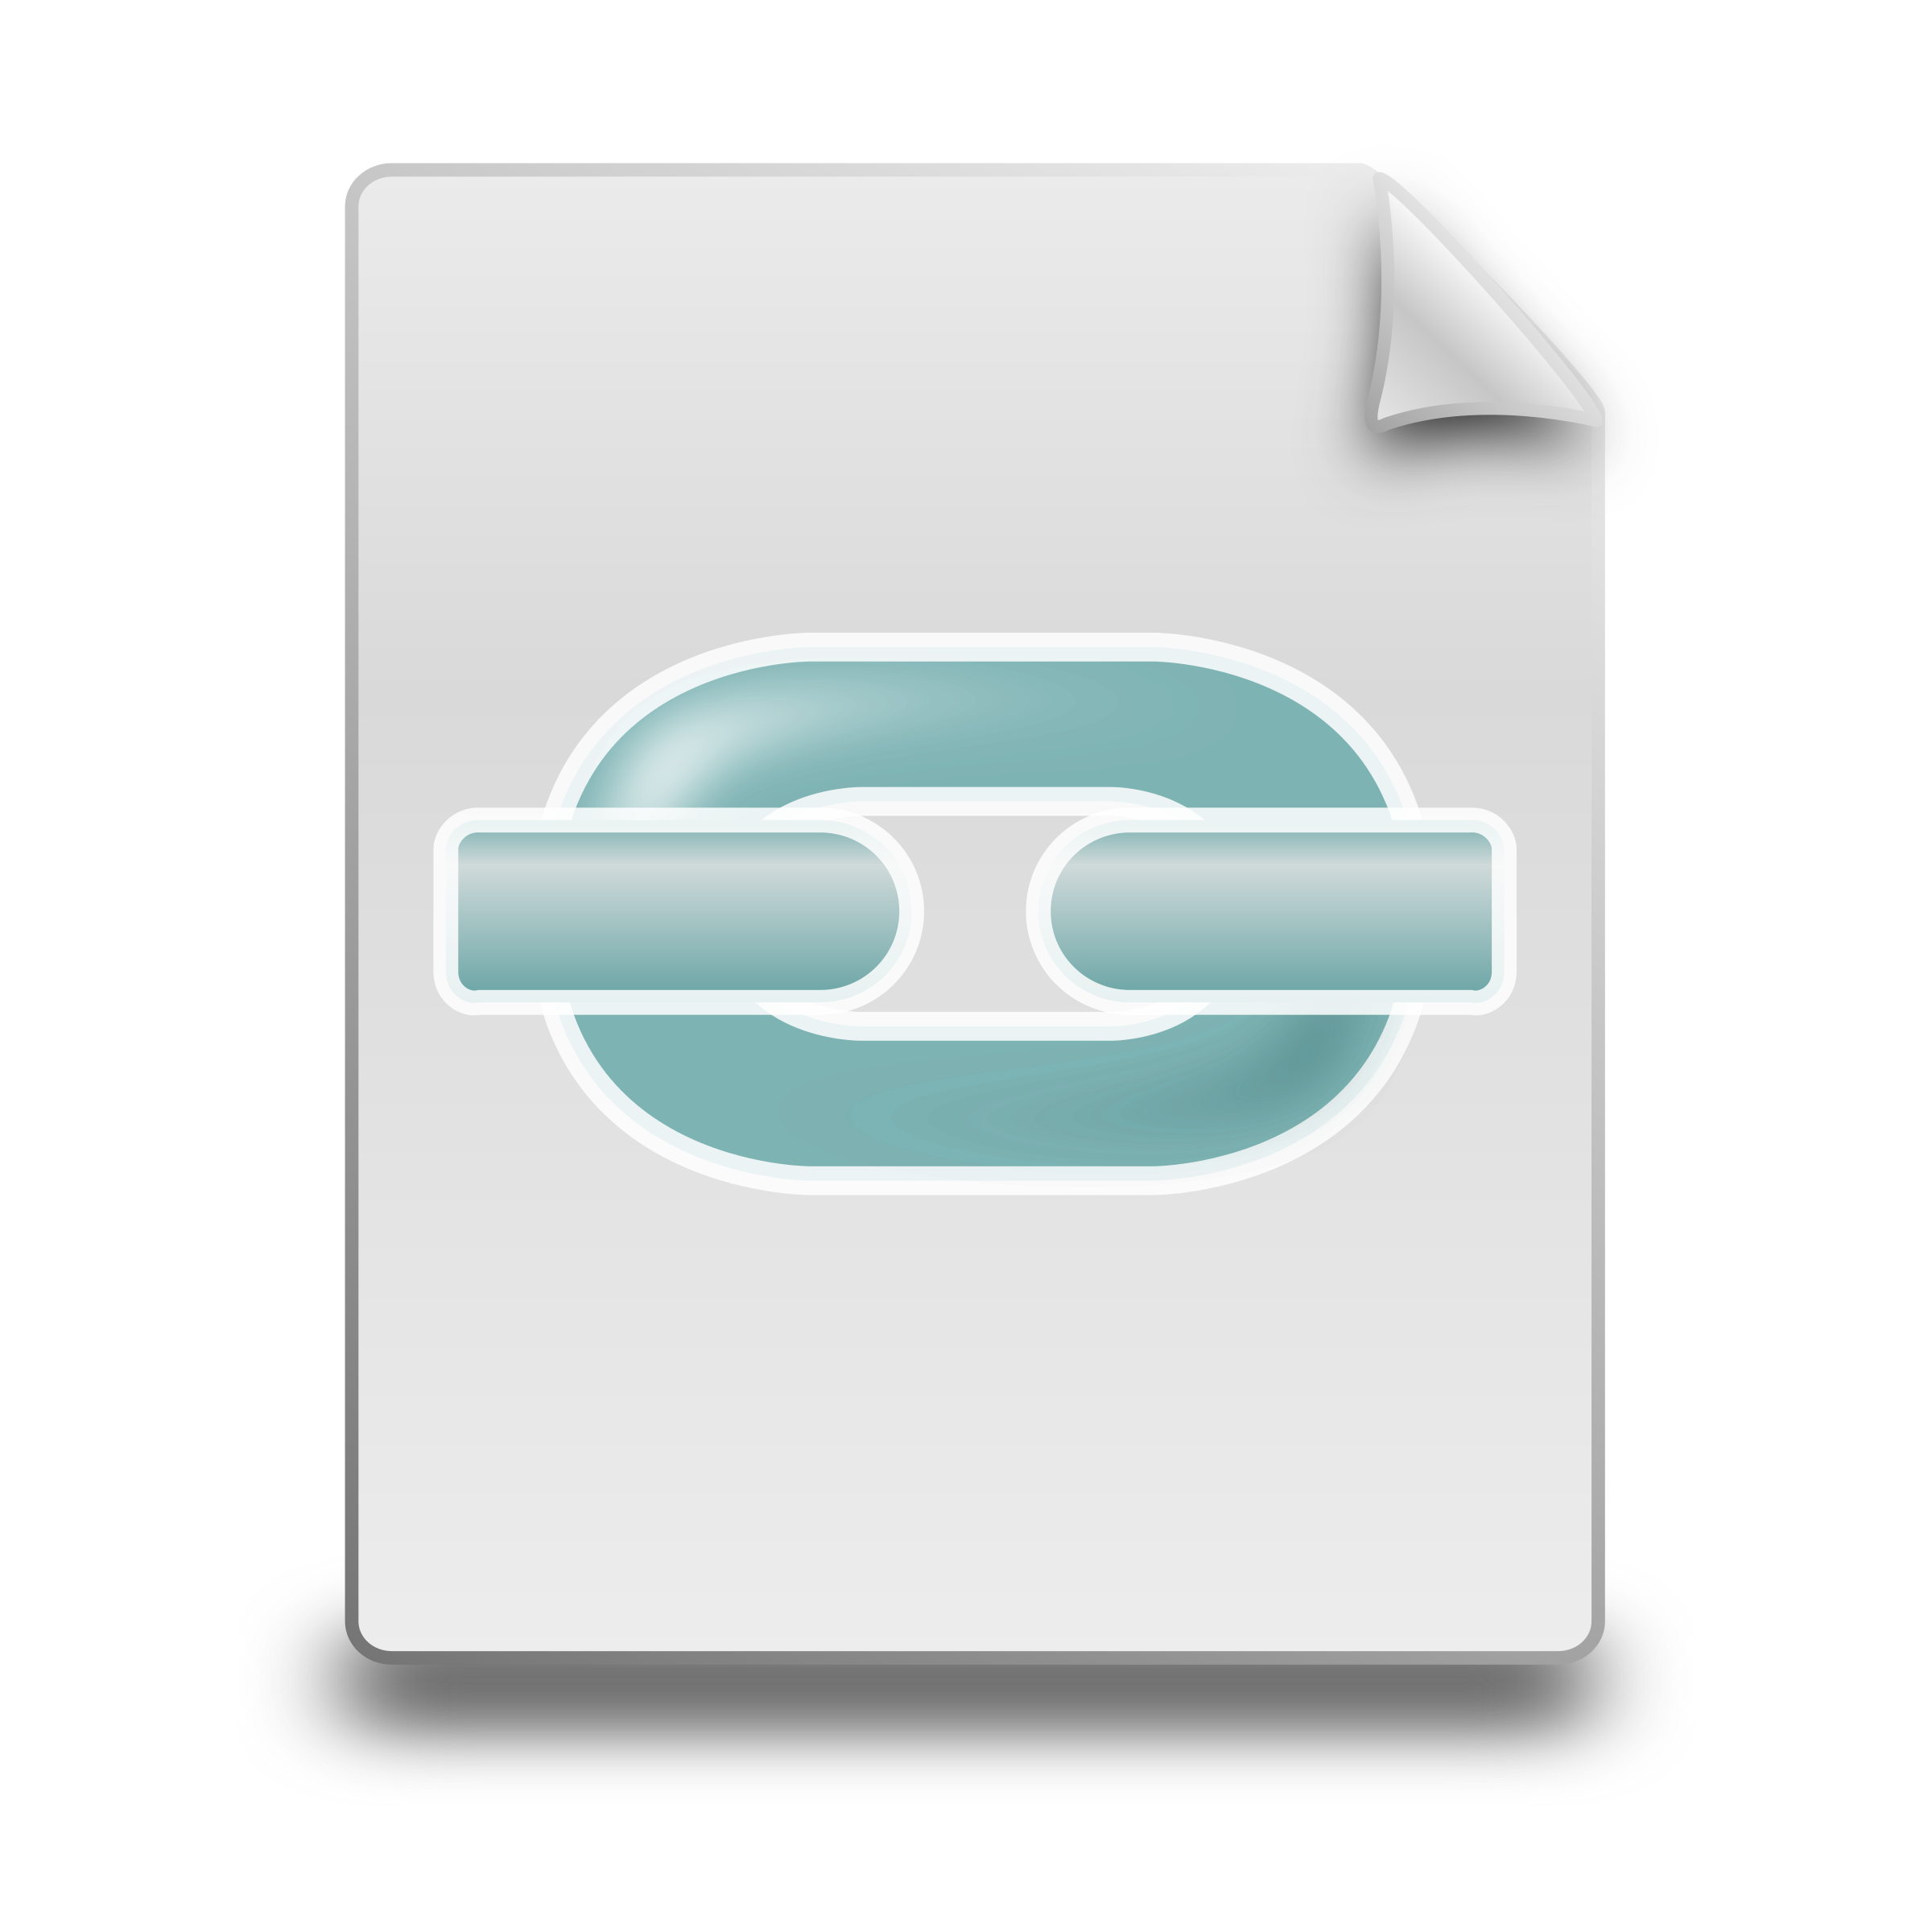 File link icon by Gently